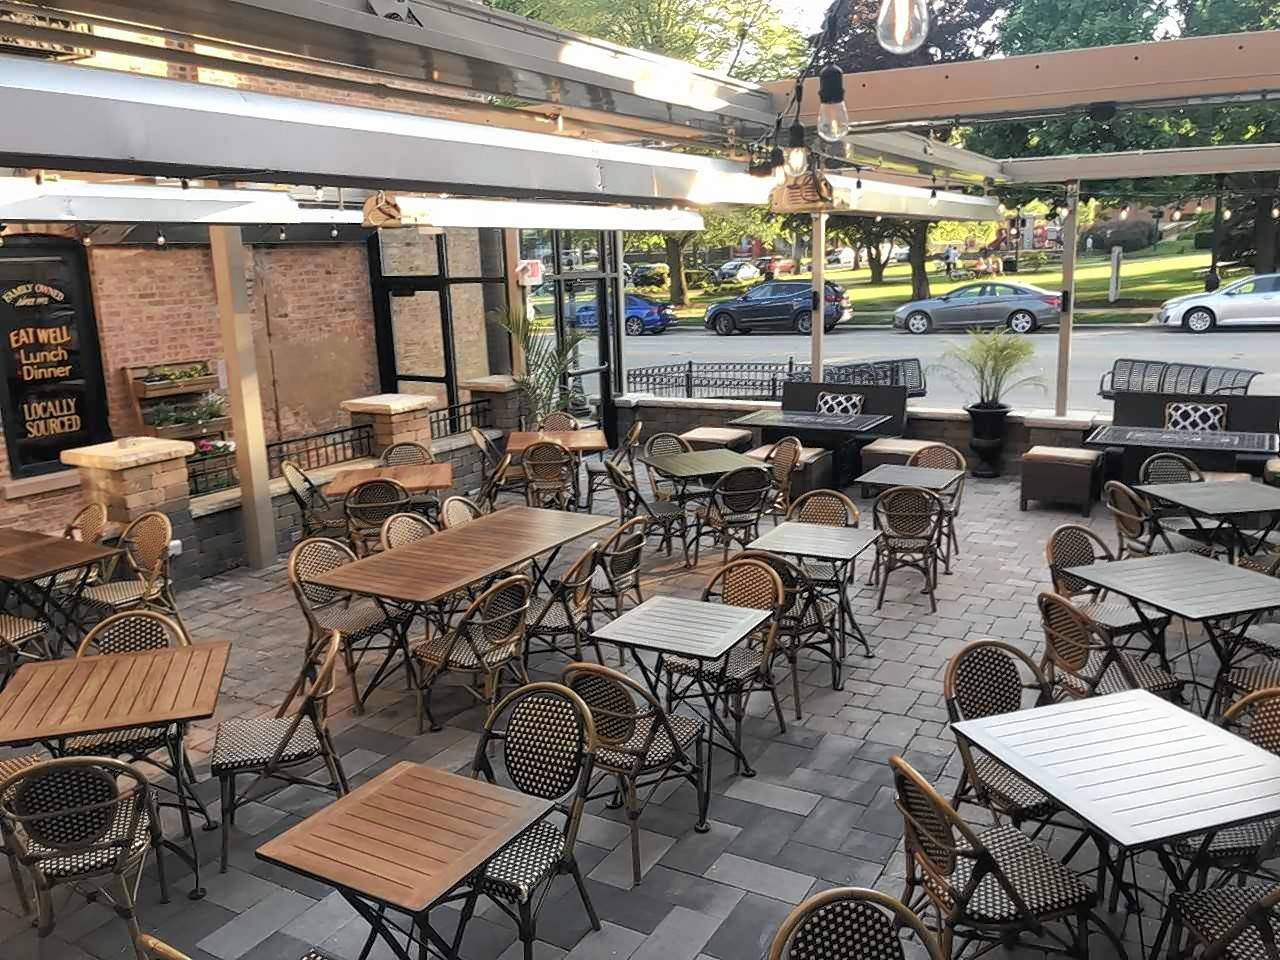 O'Toole's of Libertyville has opened its newly-enclosed, state-of-the-art four seasons patio that will be open year-round.